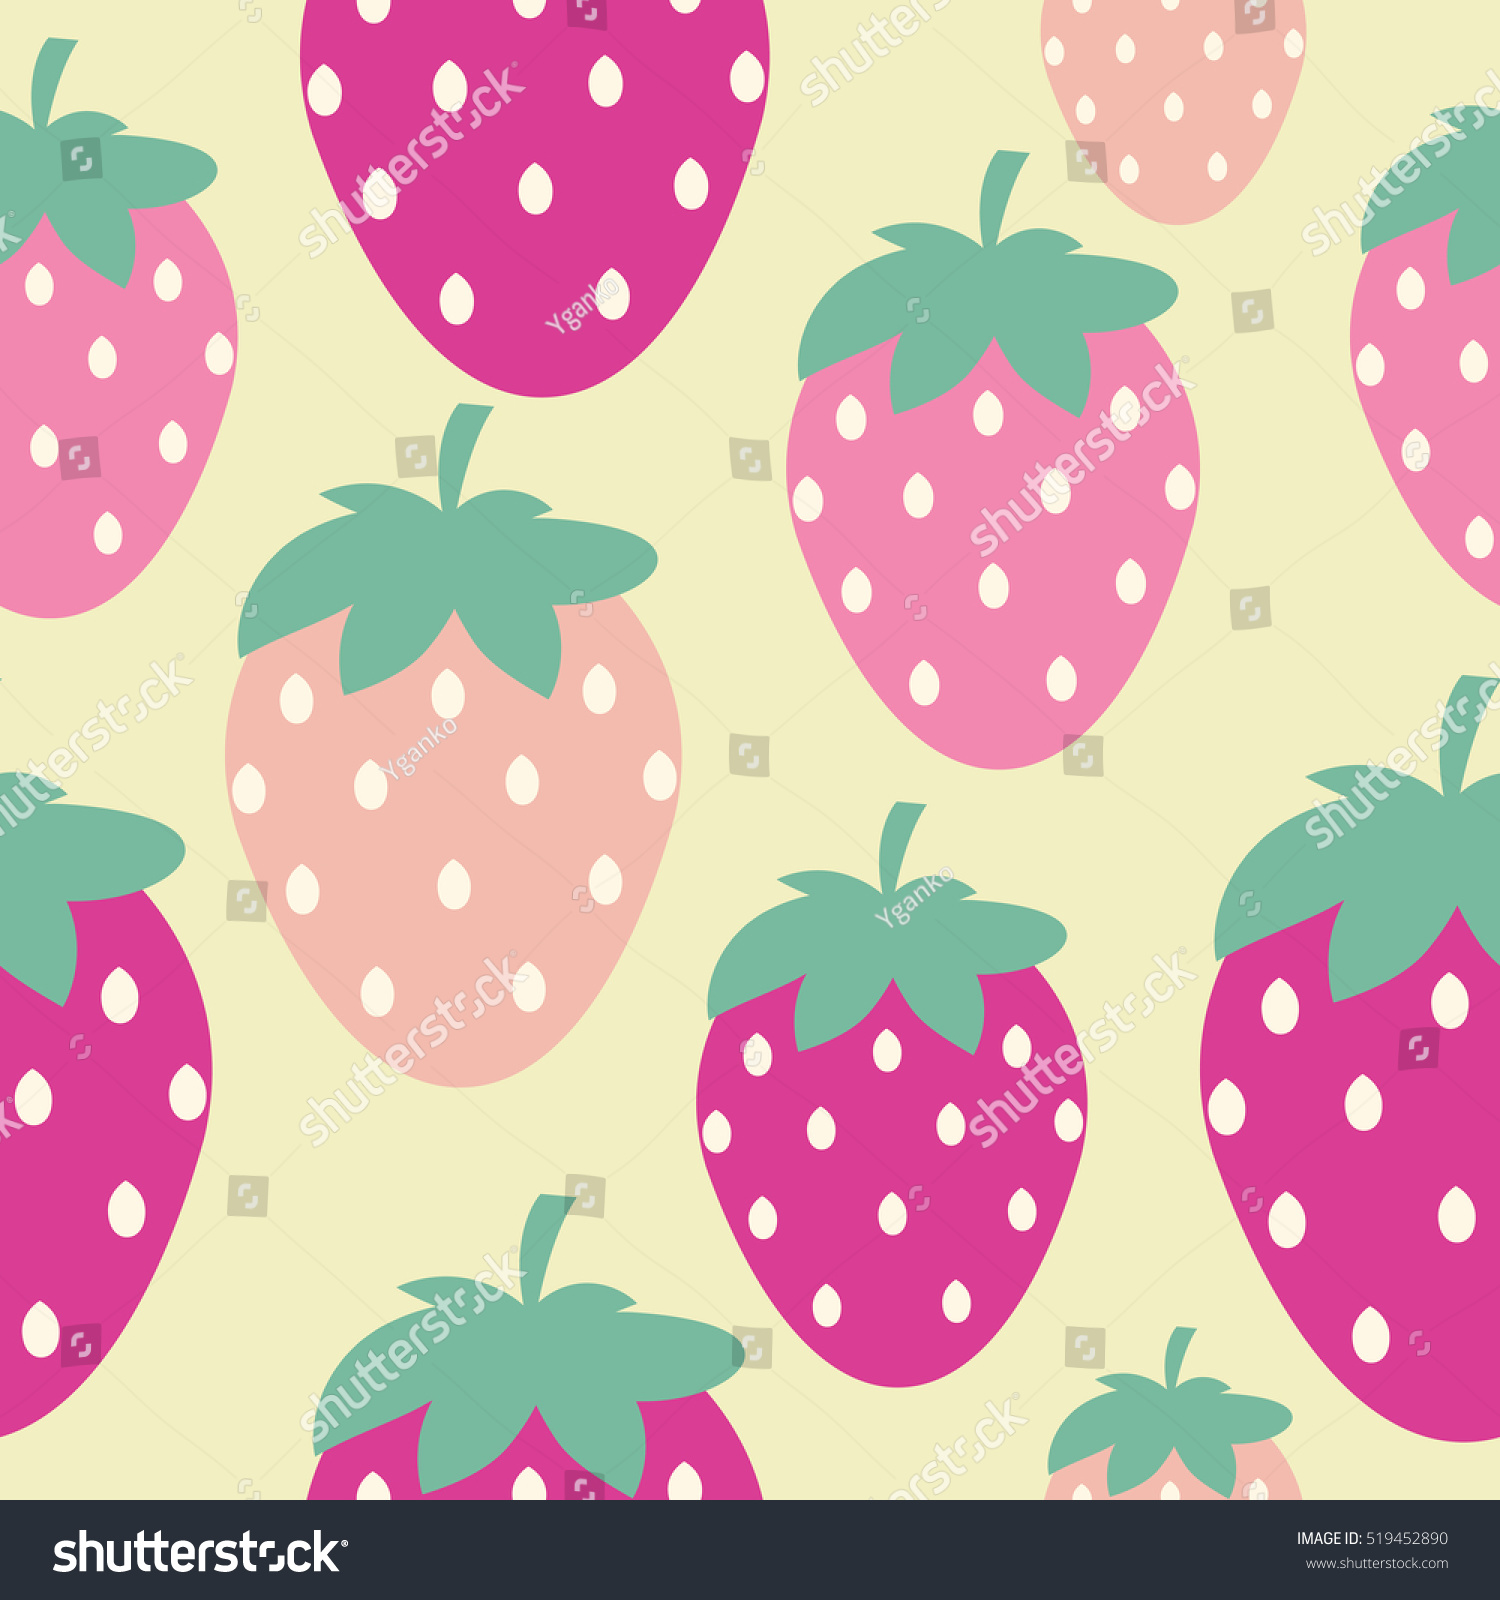 Simple Strawberry Seamless Pattern Background Vector Illustration EPS10